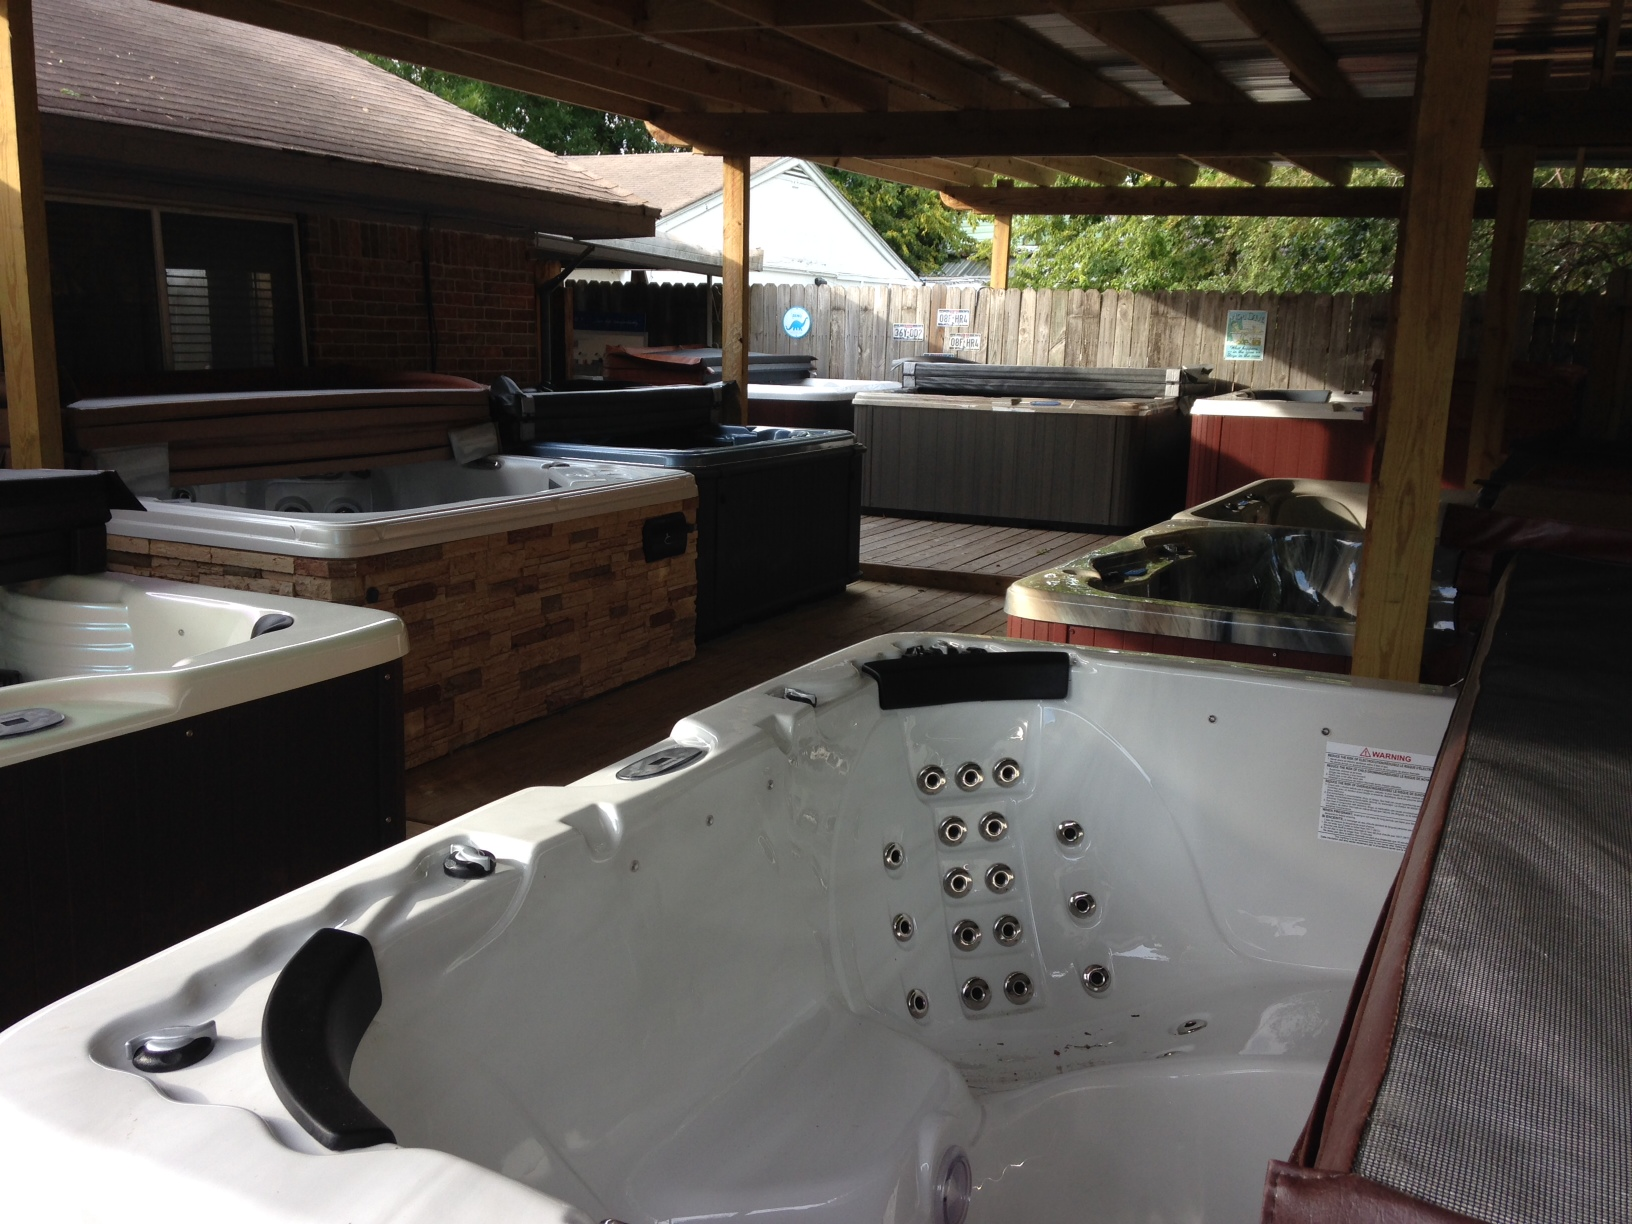 Jacuzzi Pool Service Spa Inspectors In Houston Tx 77072 Chamberofcommerce